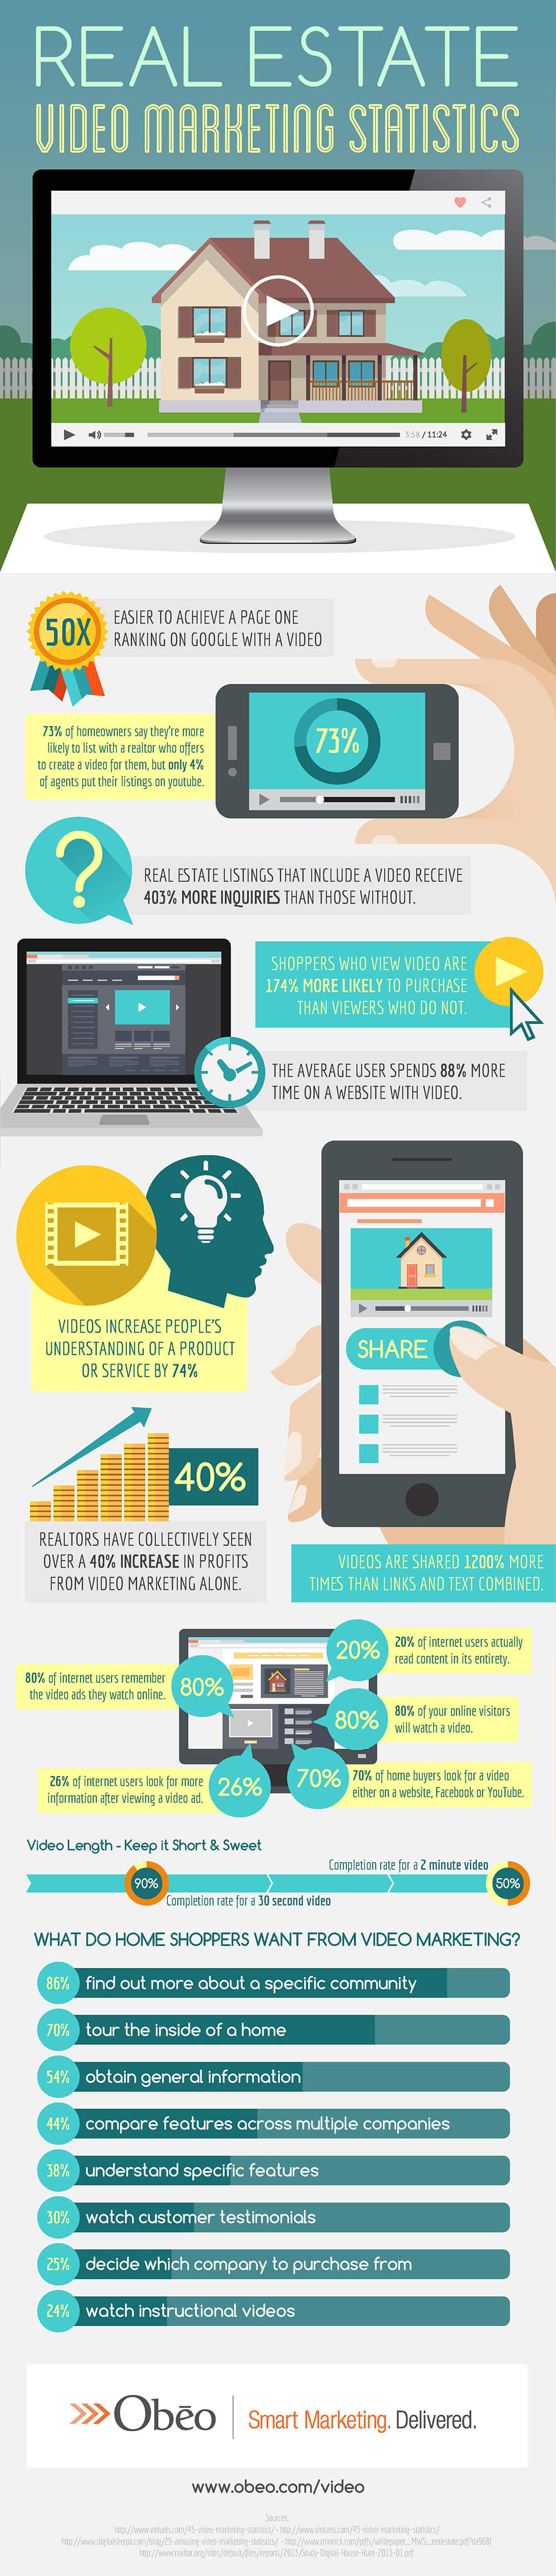 Real-Estate-Video-Marketing-Statistics-infographic